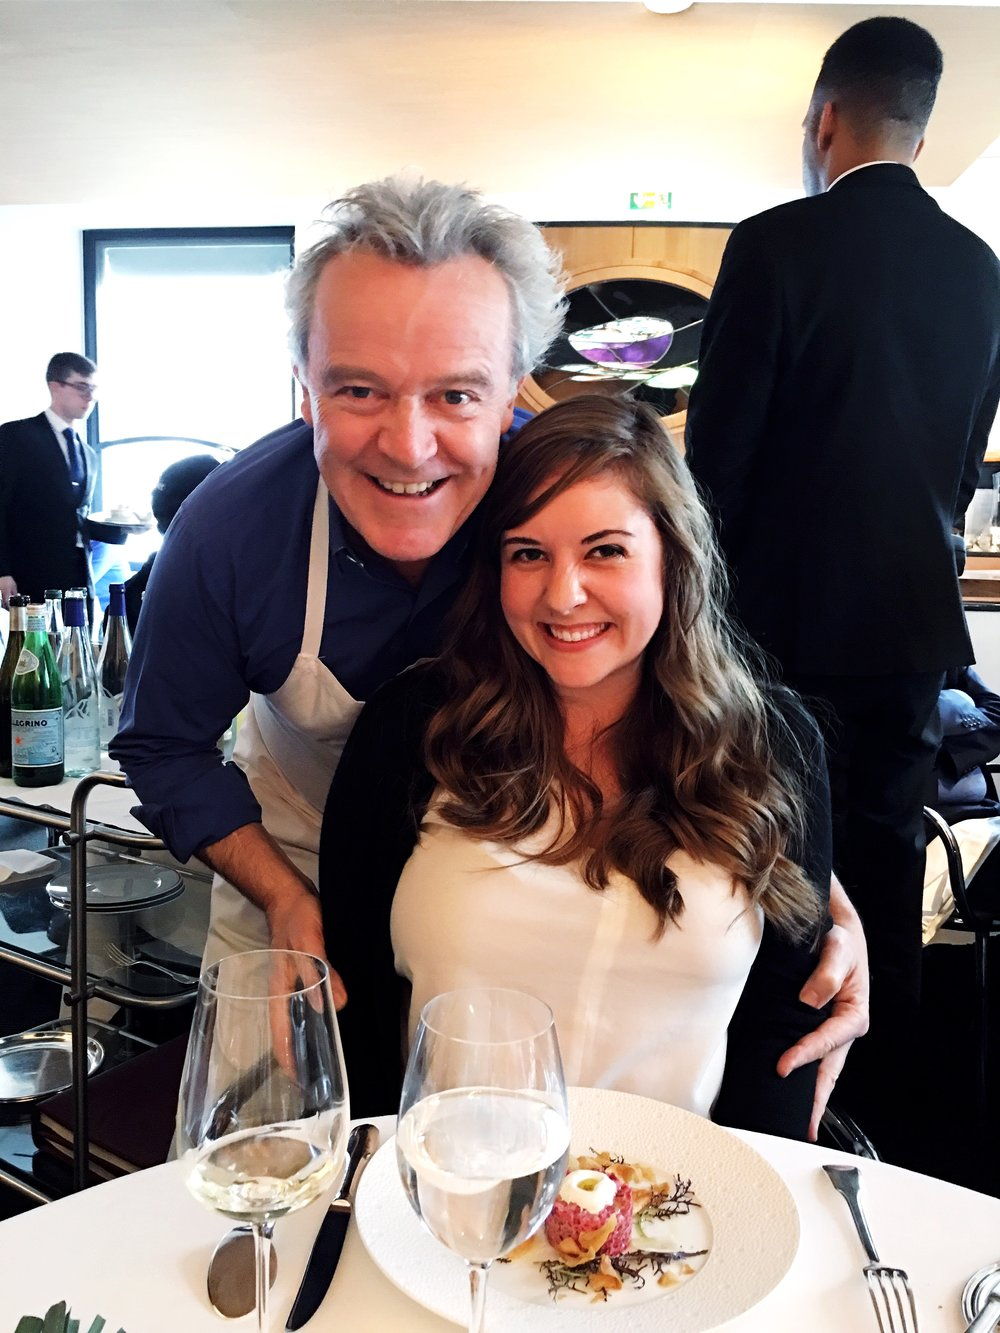 Anne hanging out with Alain Passard of 3* Michelin resto L'Arpège - NBD!